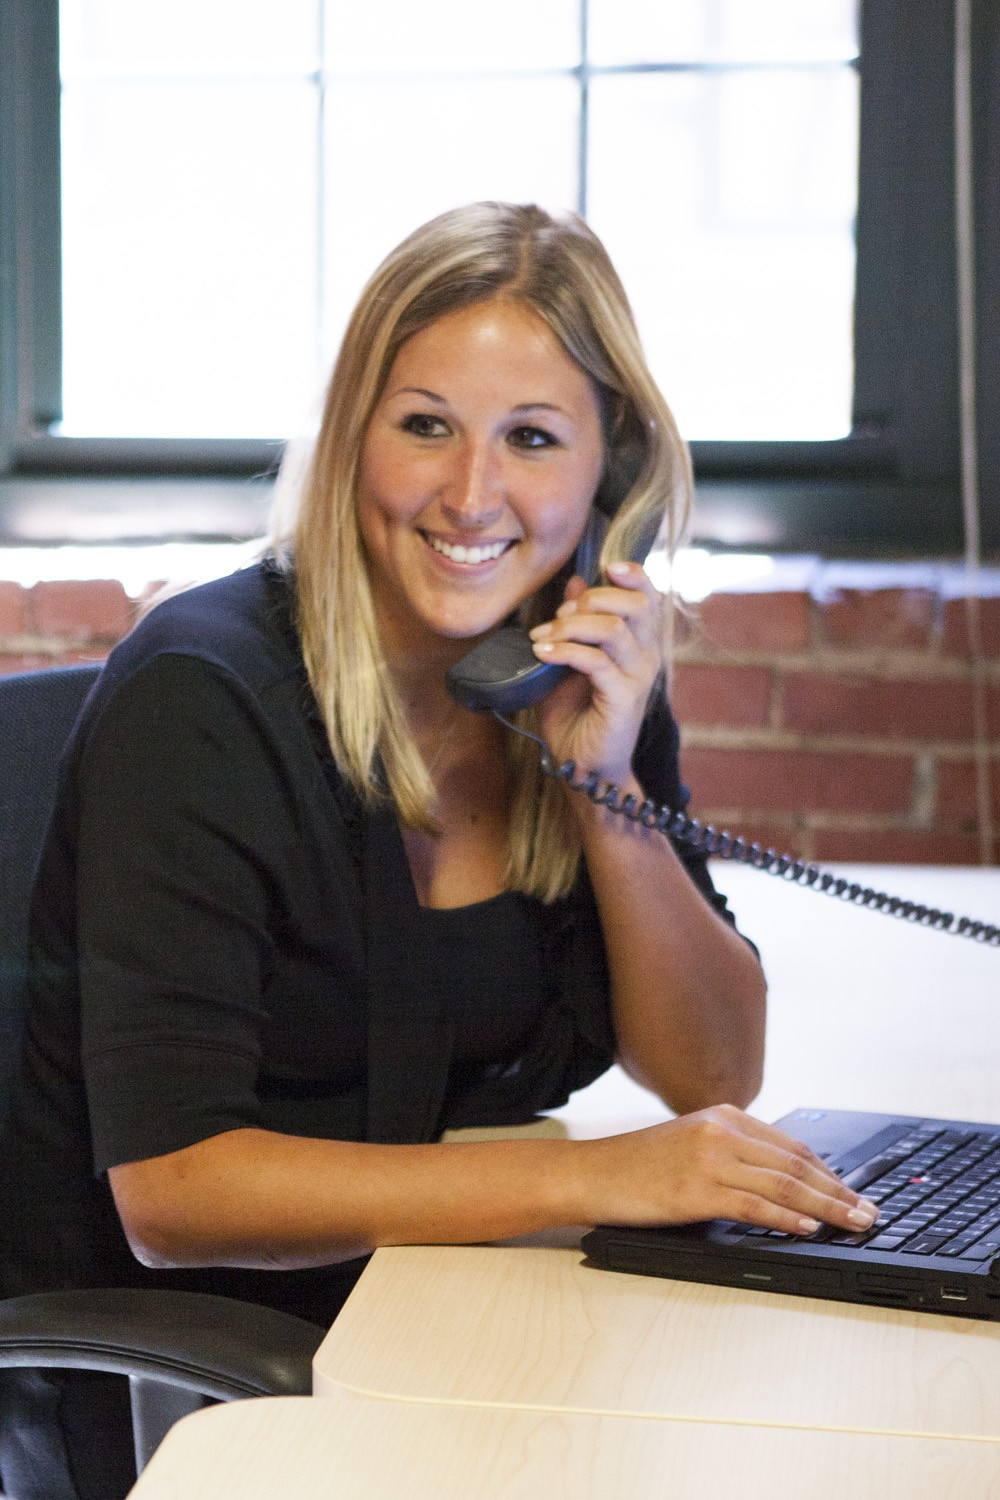 5 Voicemail Tips for Calling an Attorney